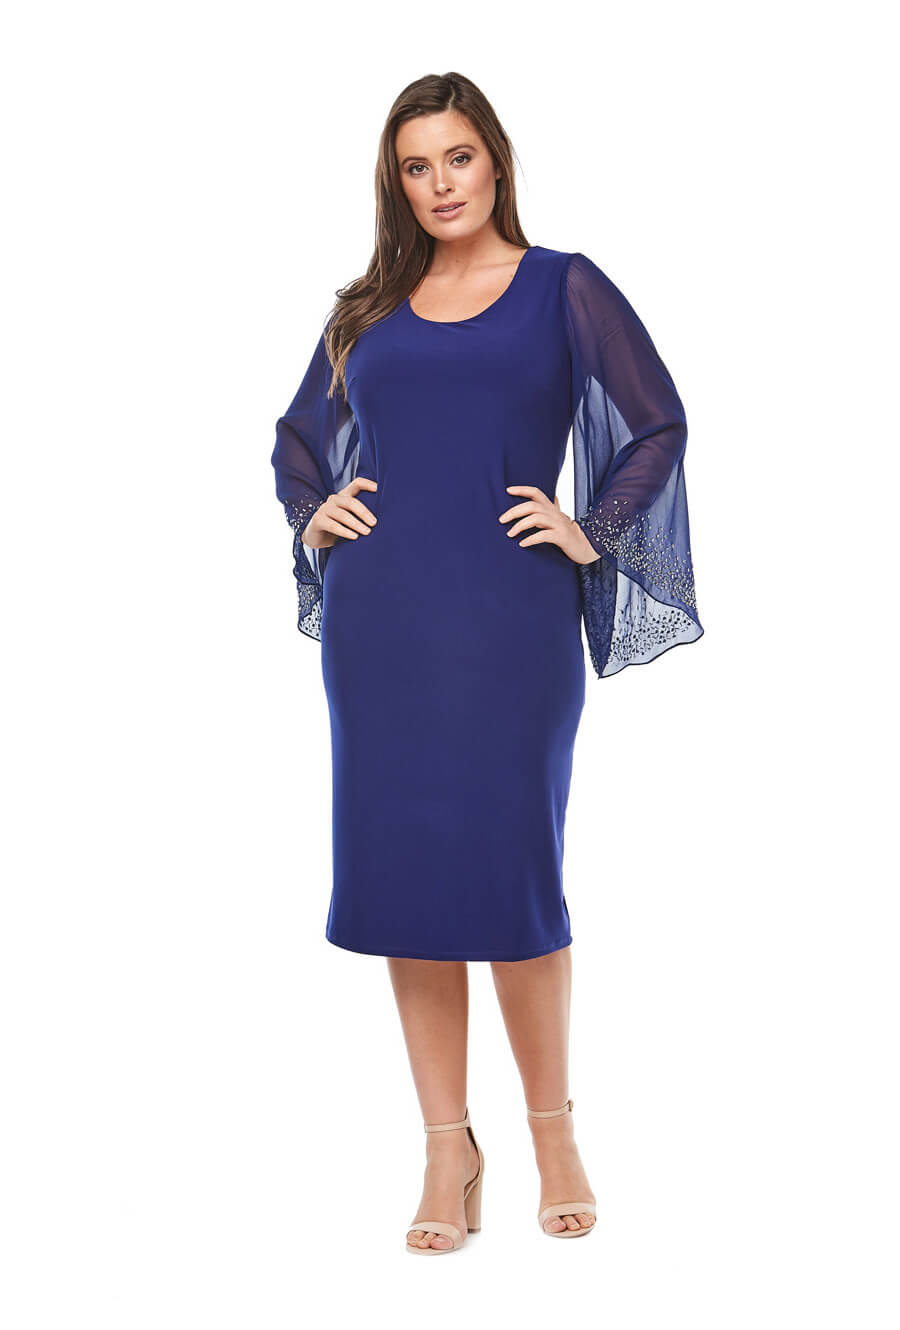 Mid length stretch jersey dress with chiffon bell sleeves and beaded detail